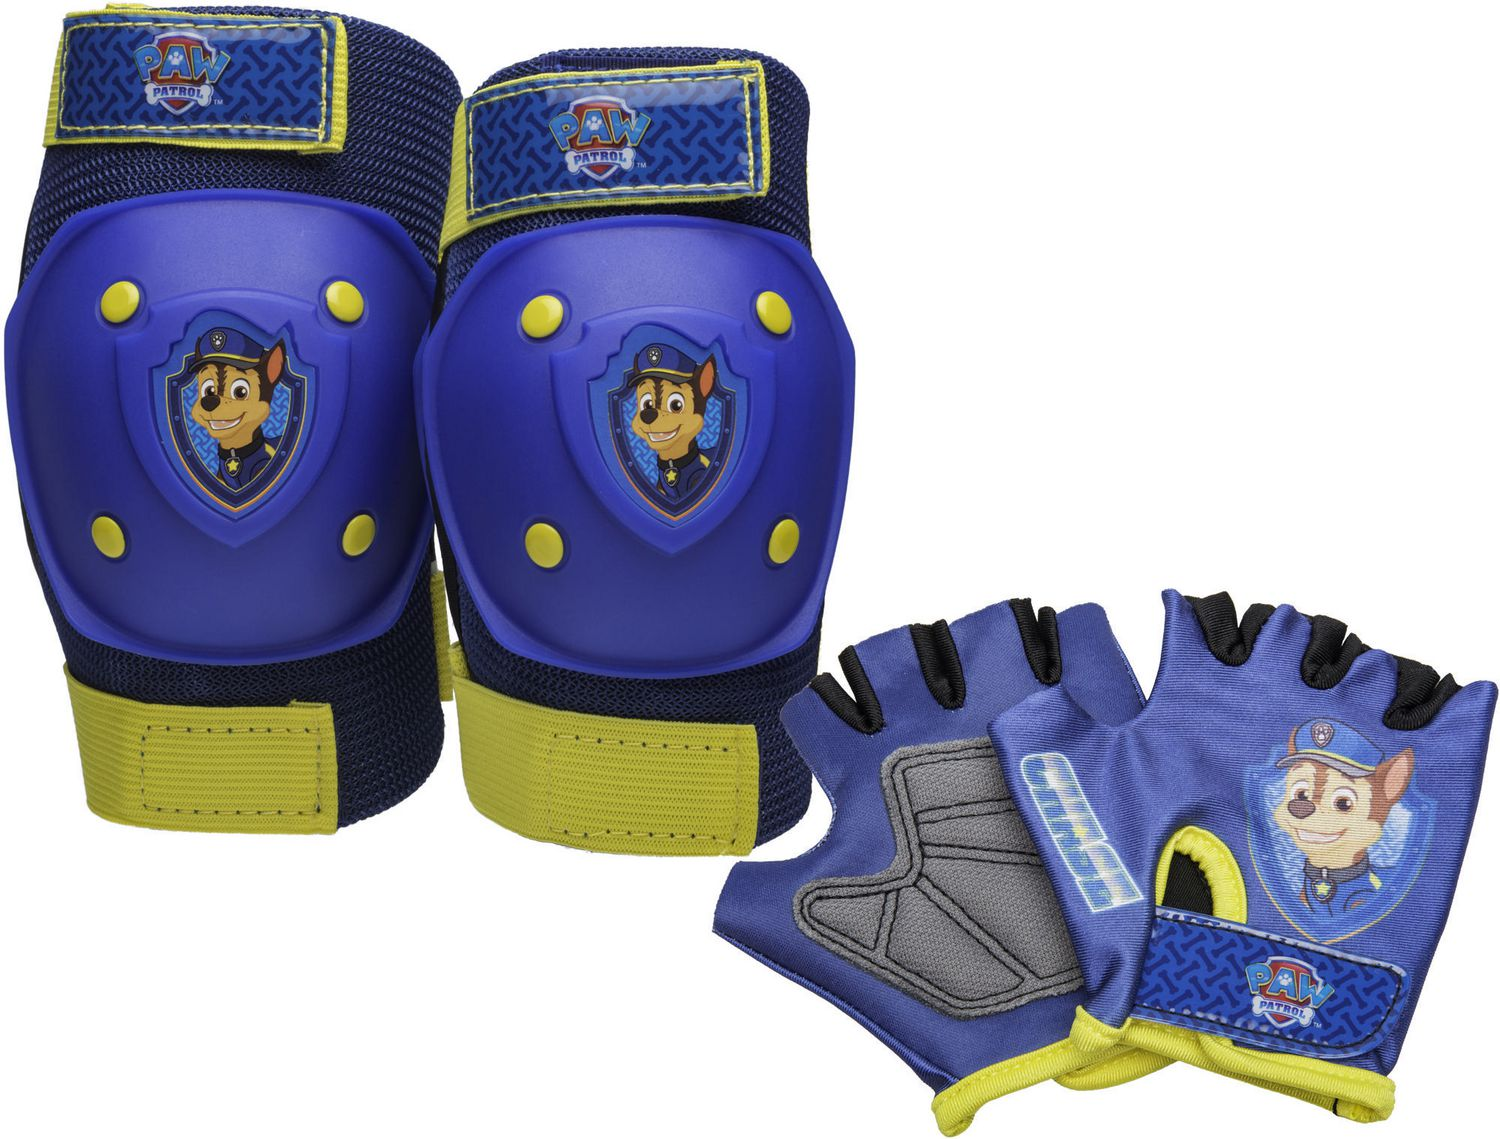 Bell Protective Gear with Elbow Pads//Knee Pads and Gloves